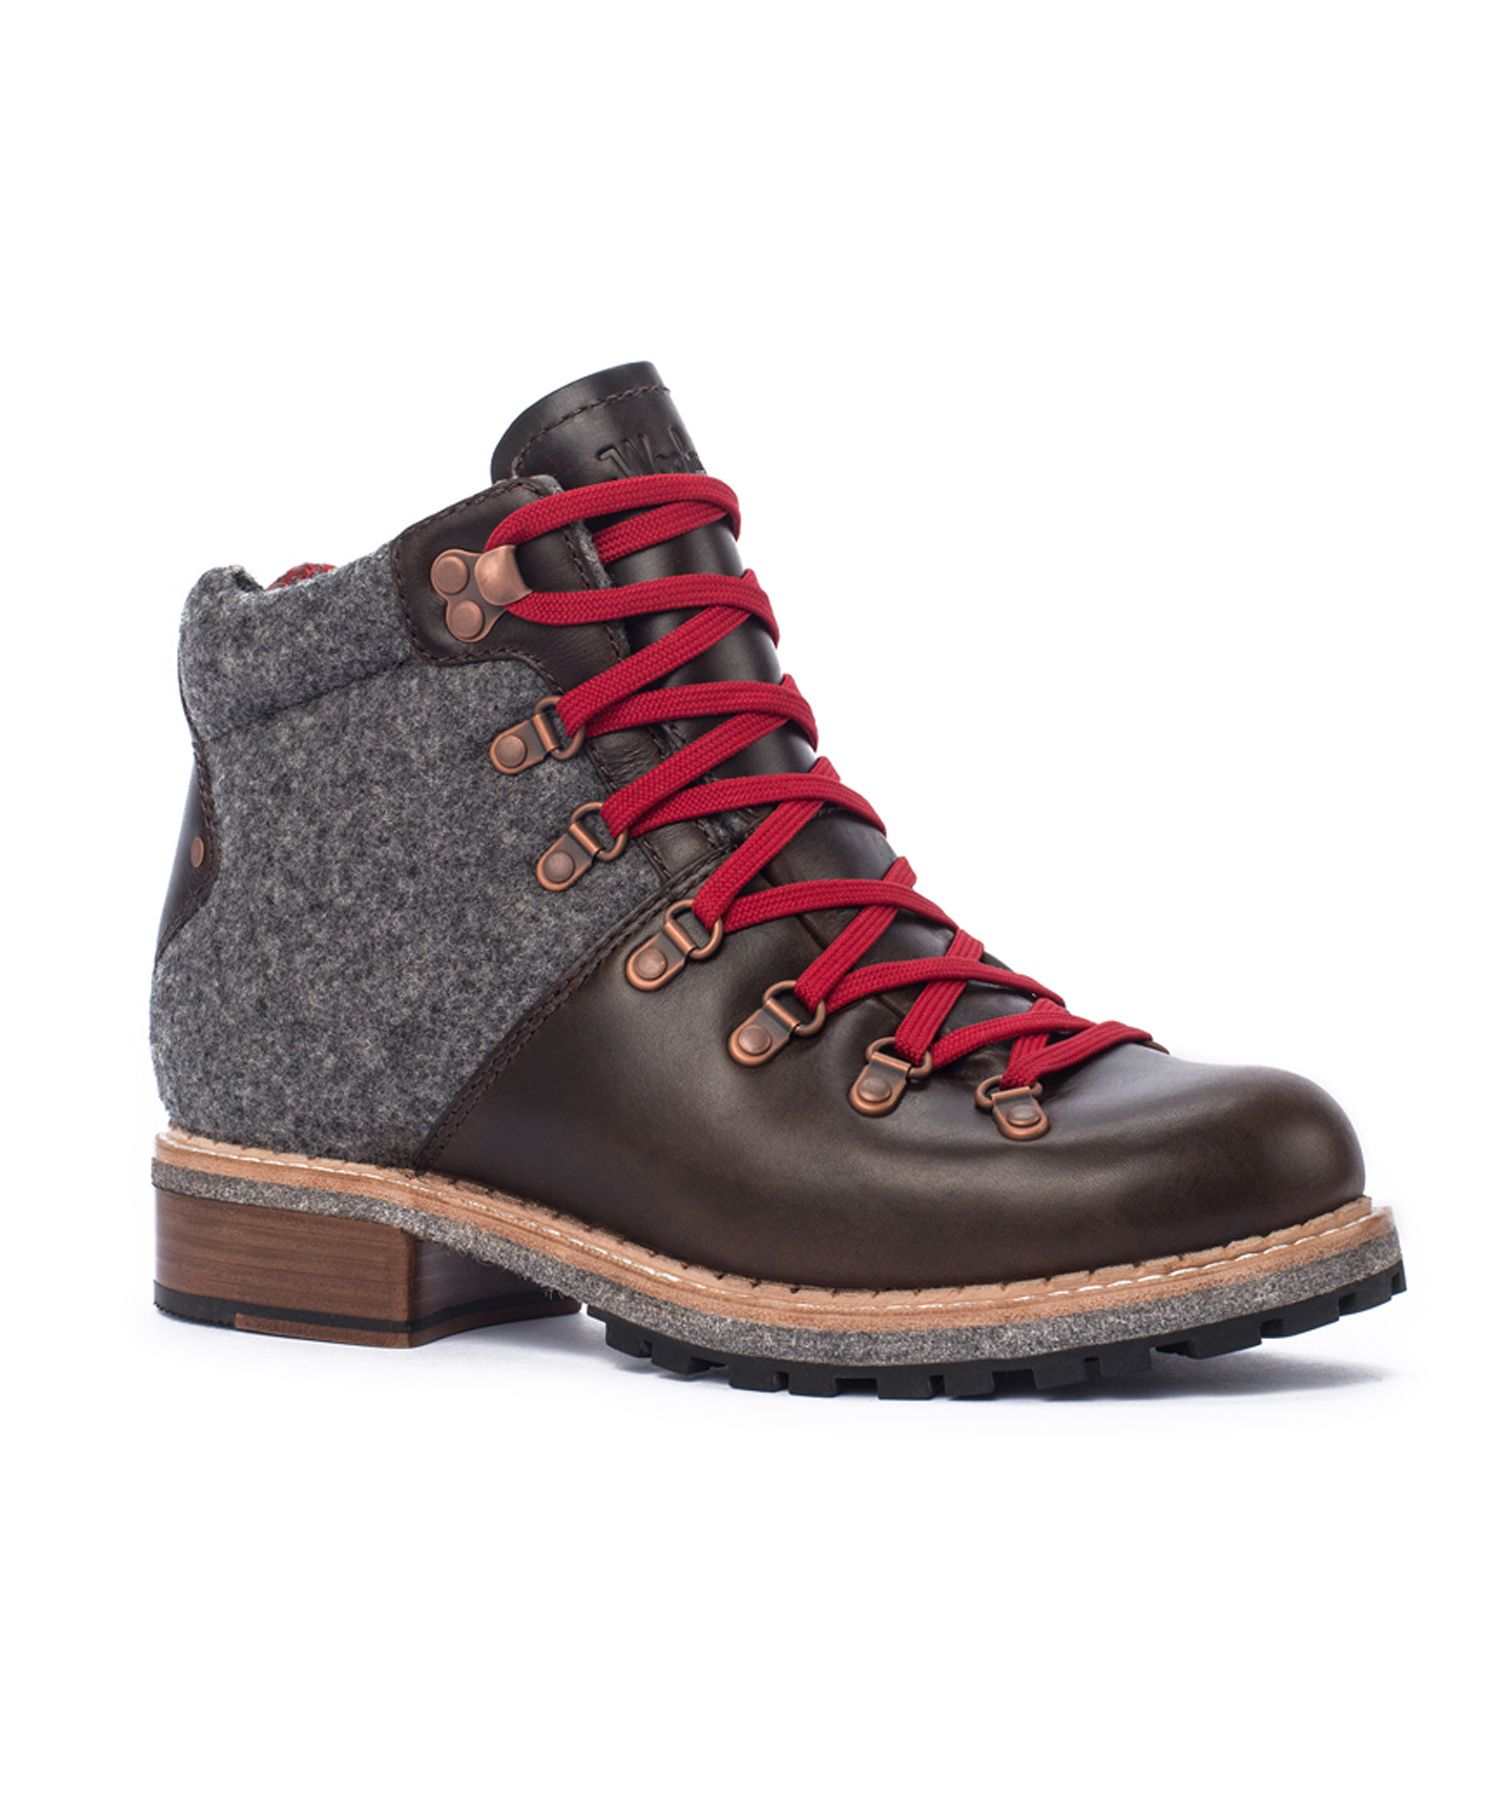 Women s Rockies Hiker Boot by WOOLRICH The Original Outdoor